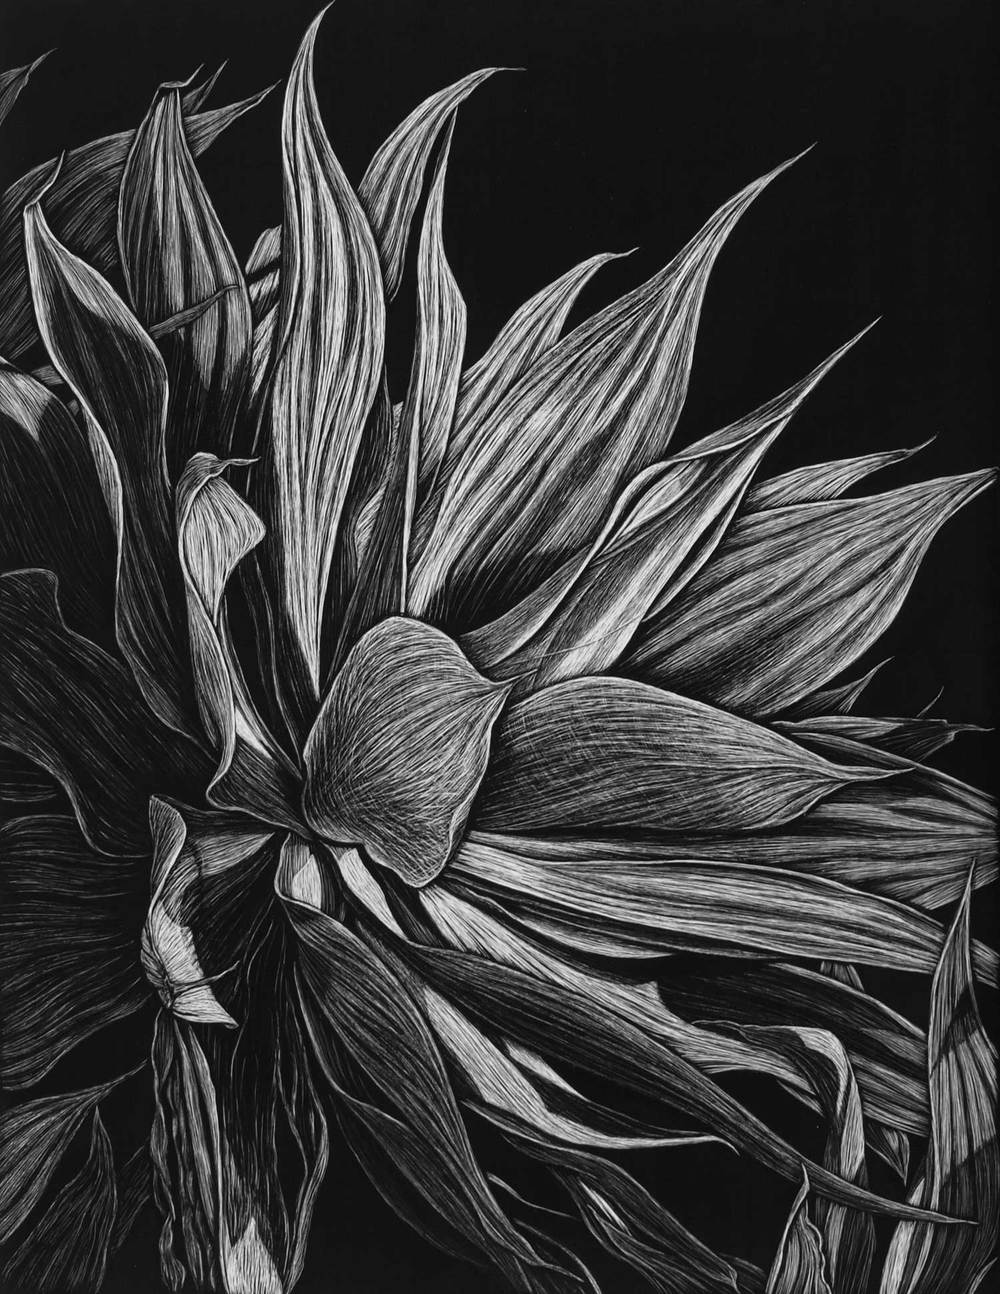 AGAVE, CLAREVILLE BEACH I  45.5 X 35.5 CM EDITION OF 50  PIGMENT ON COTTON RAG PAPER  $750